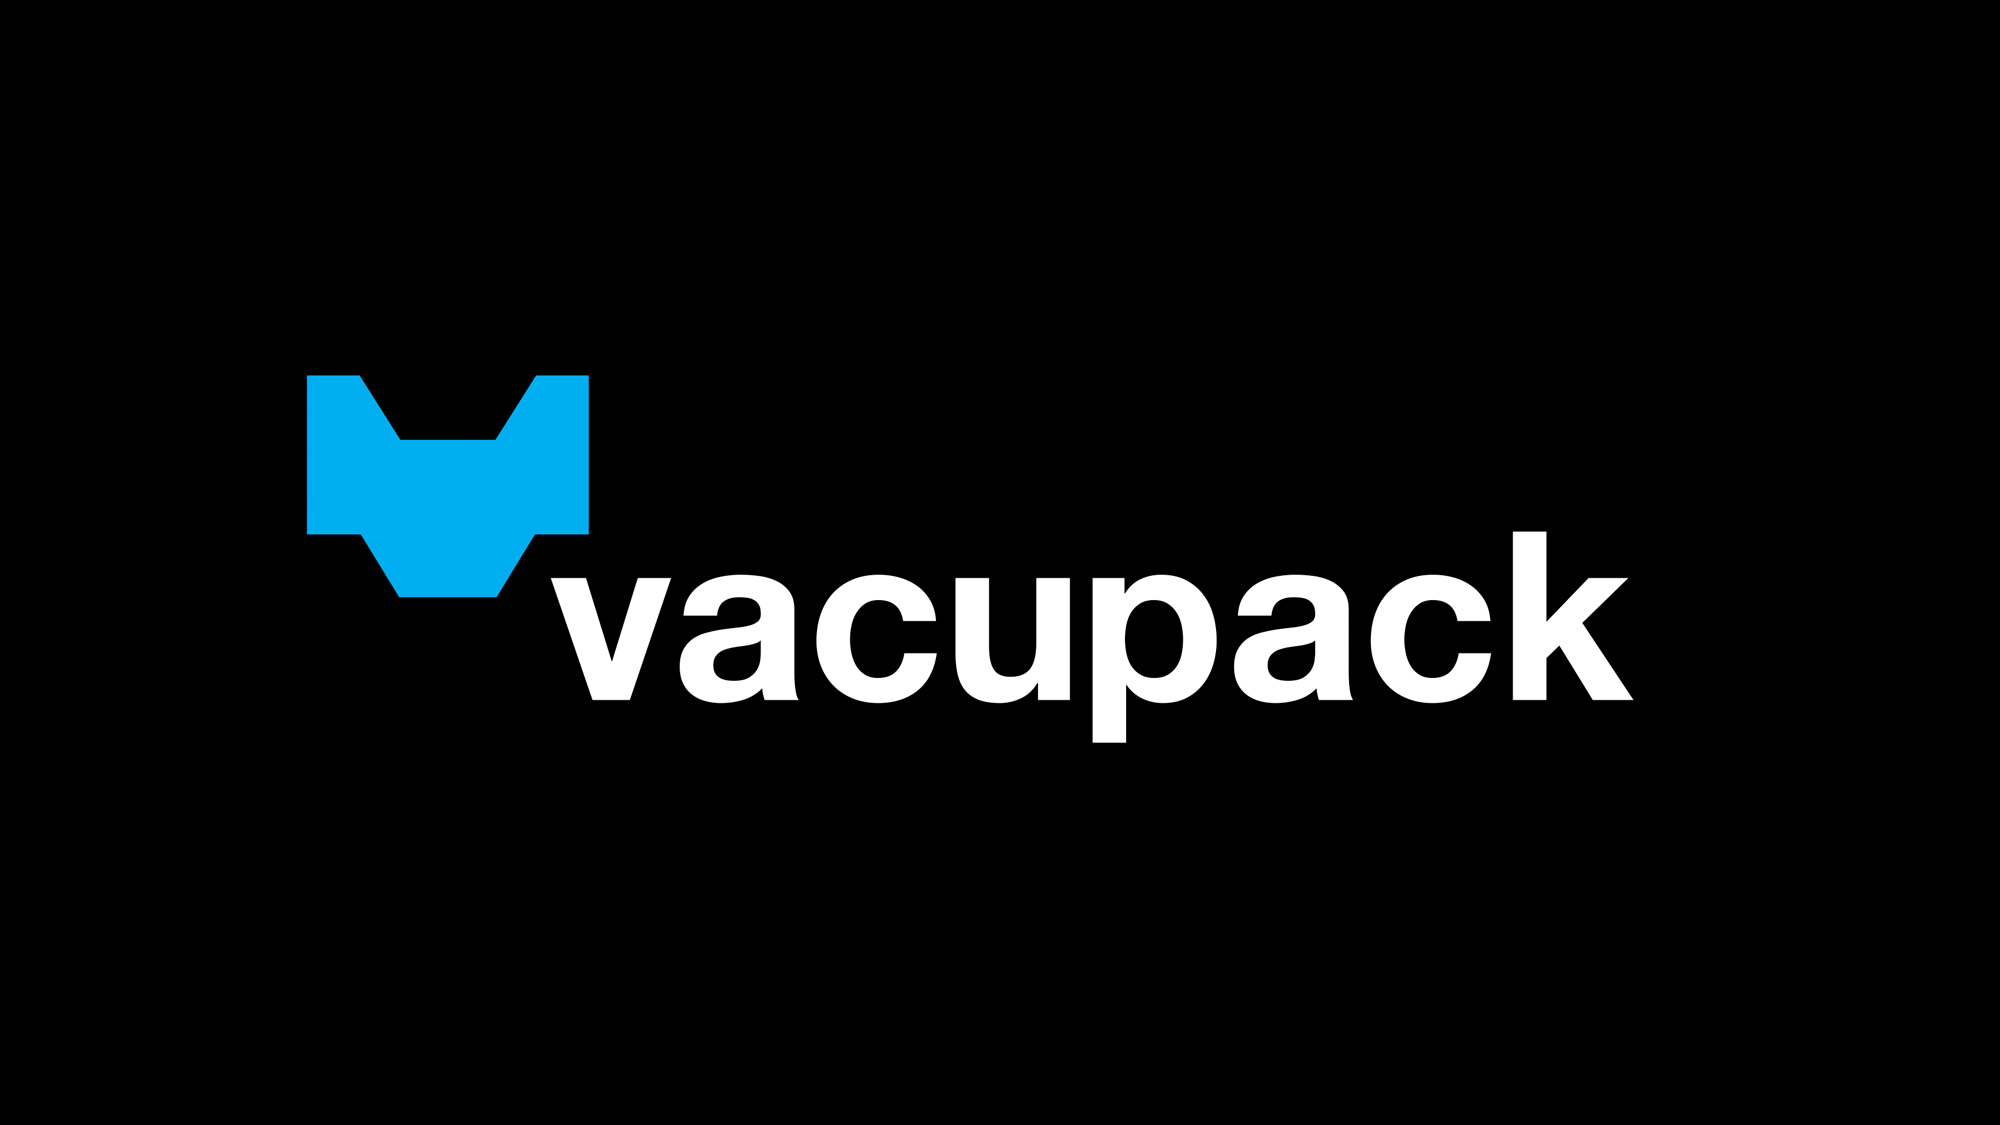 Vacupack logo on black background